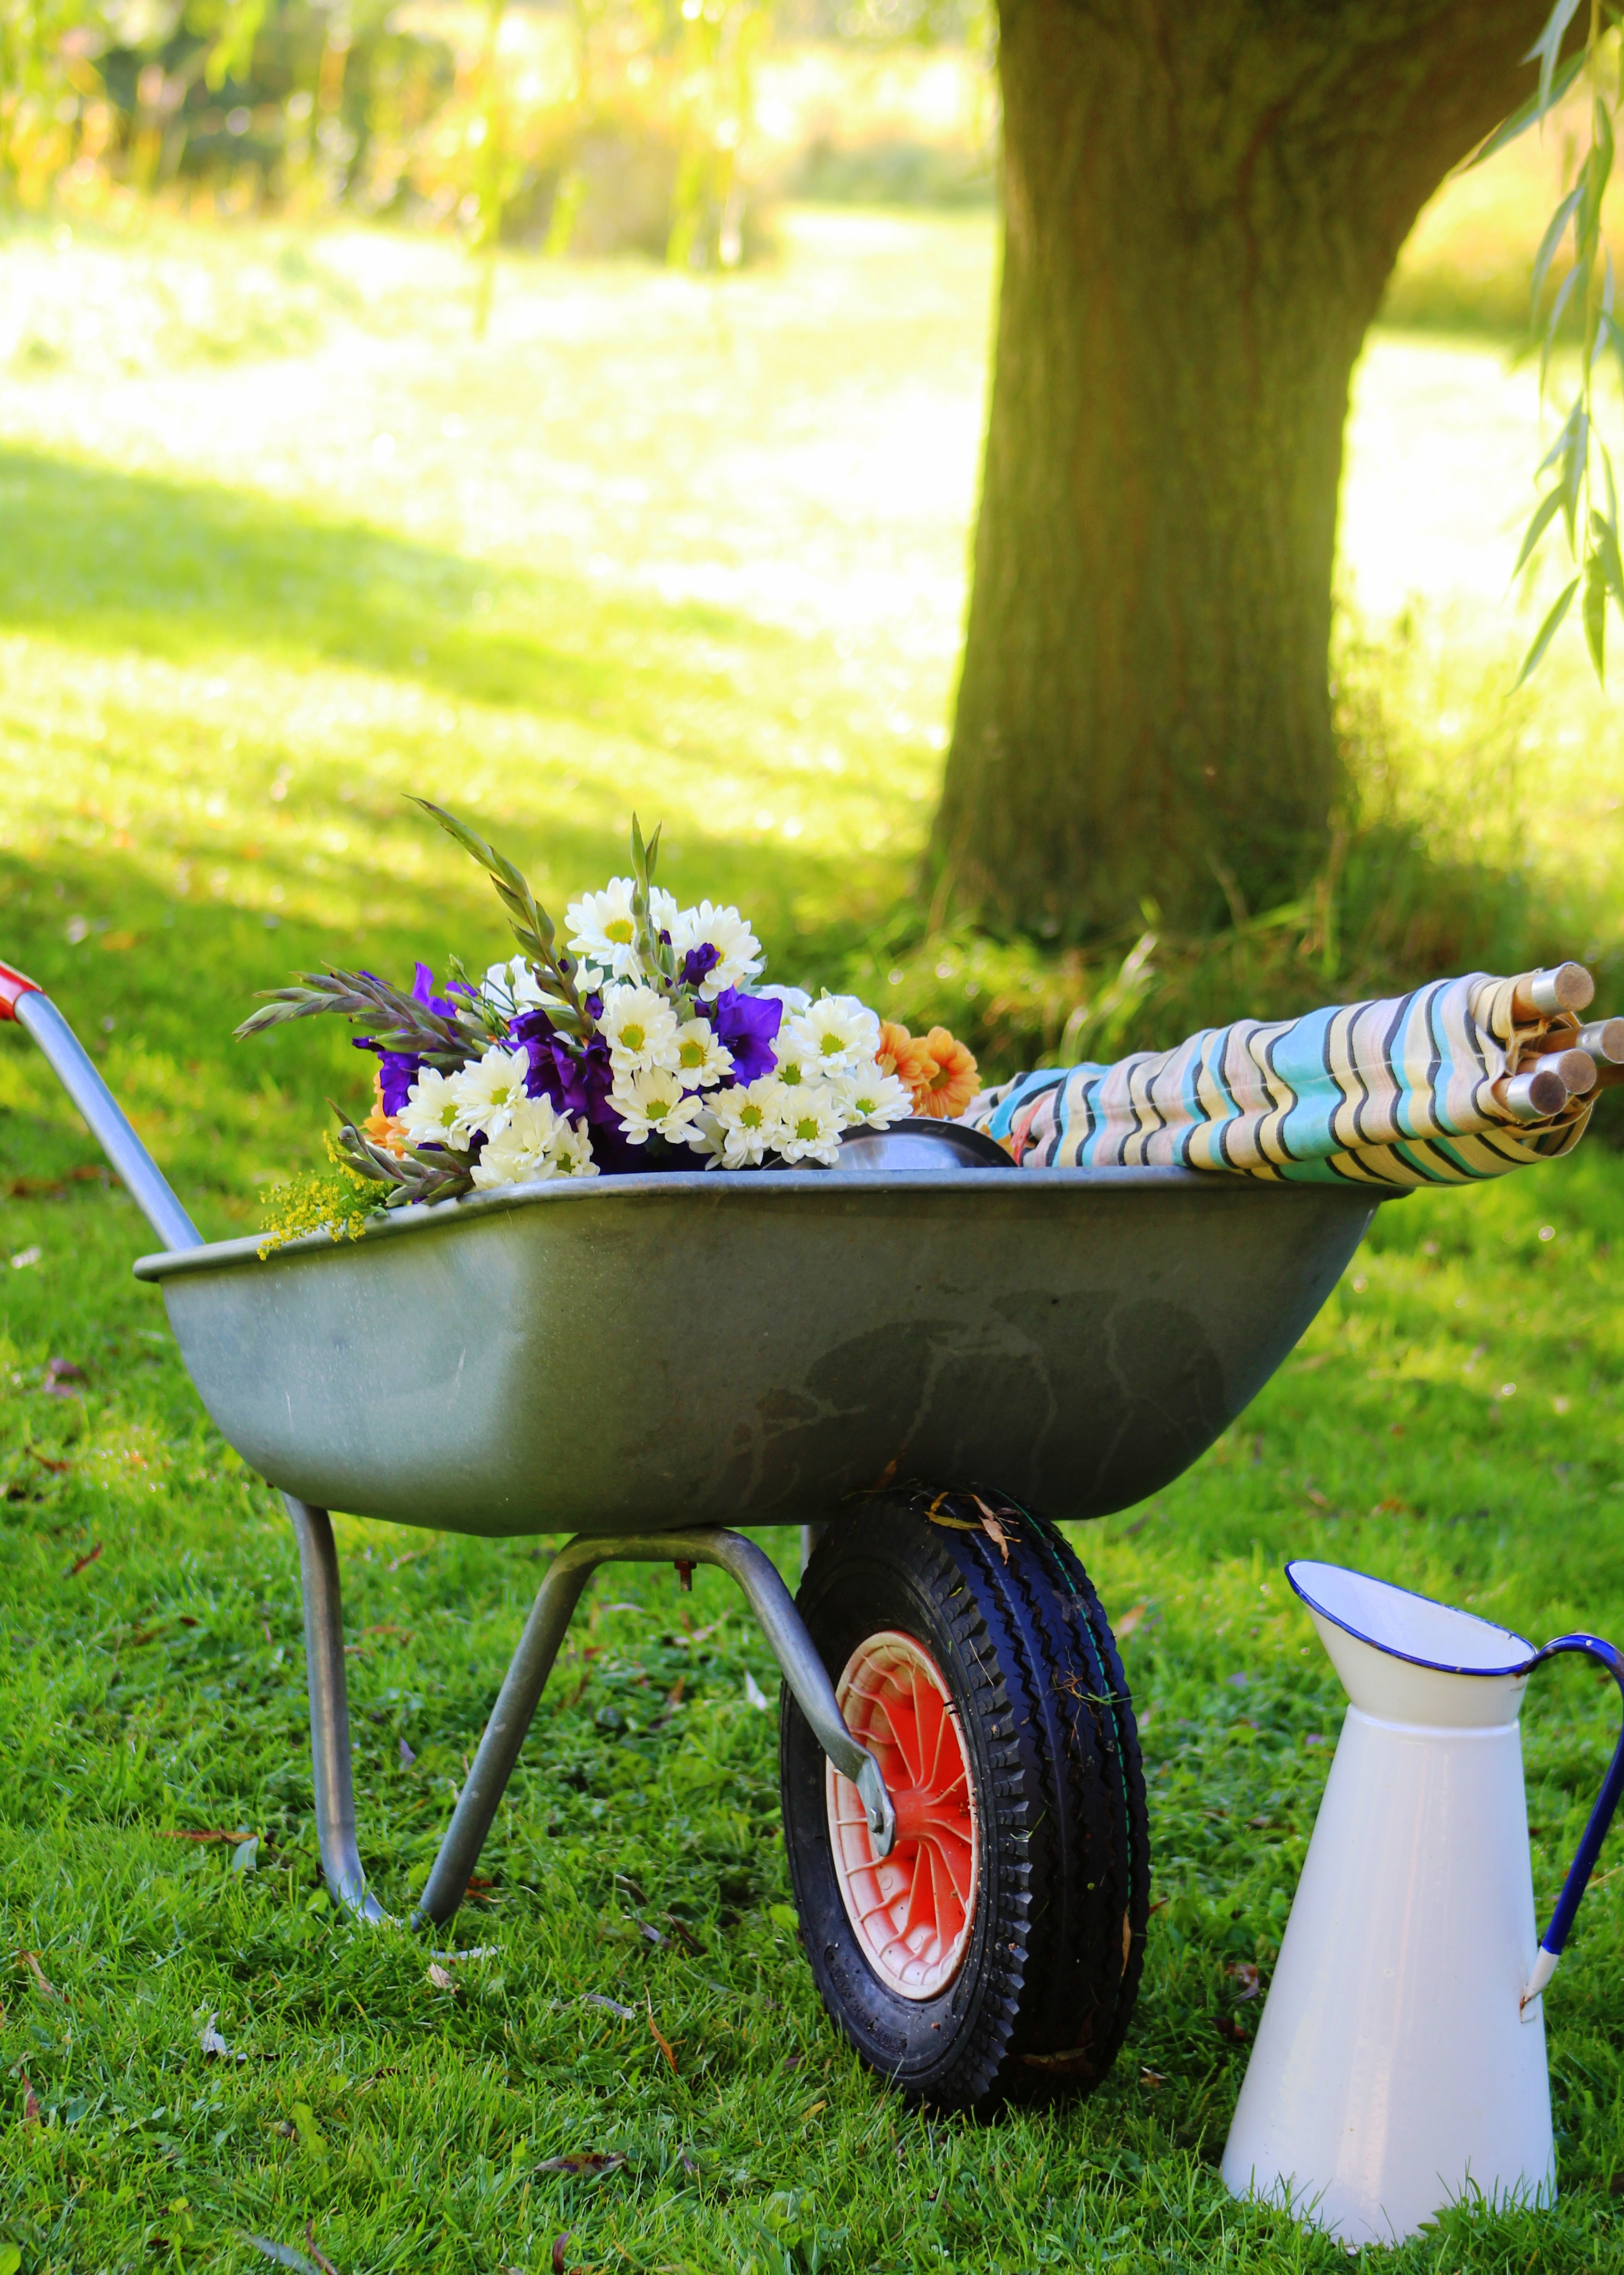 Wheelbarrow and flowers